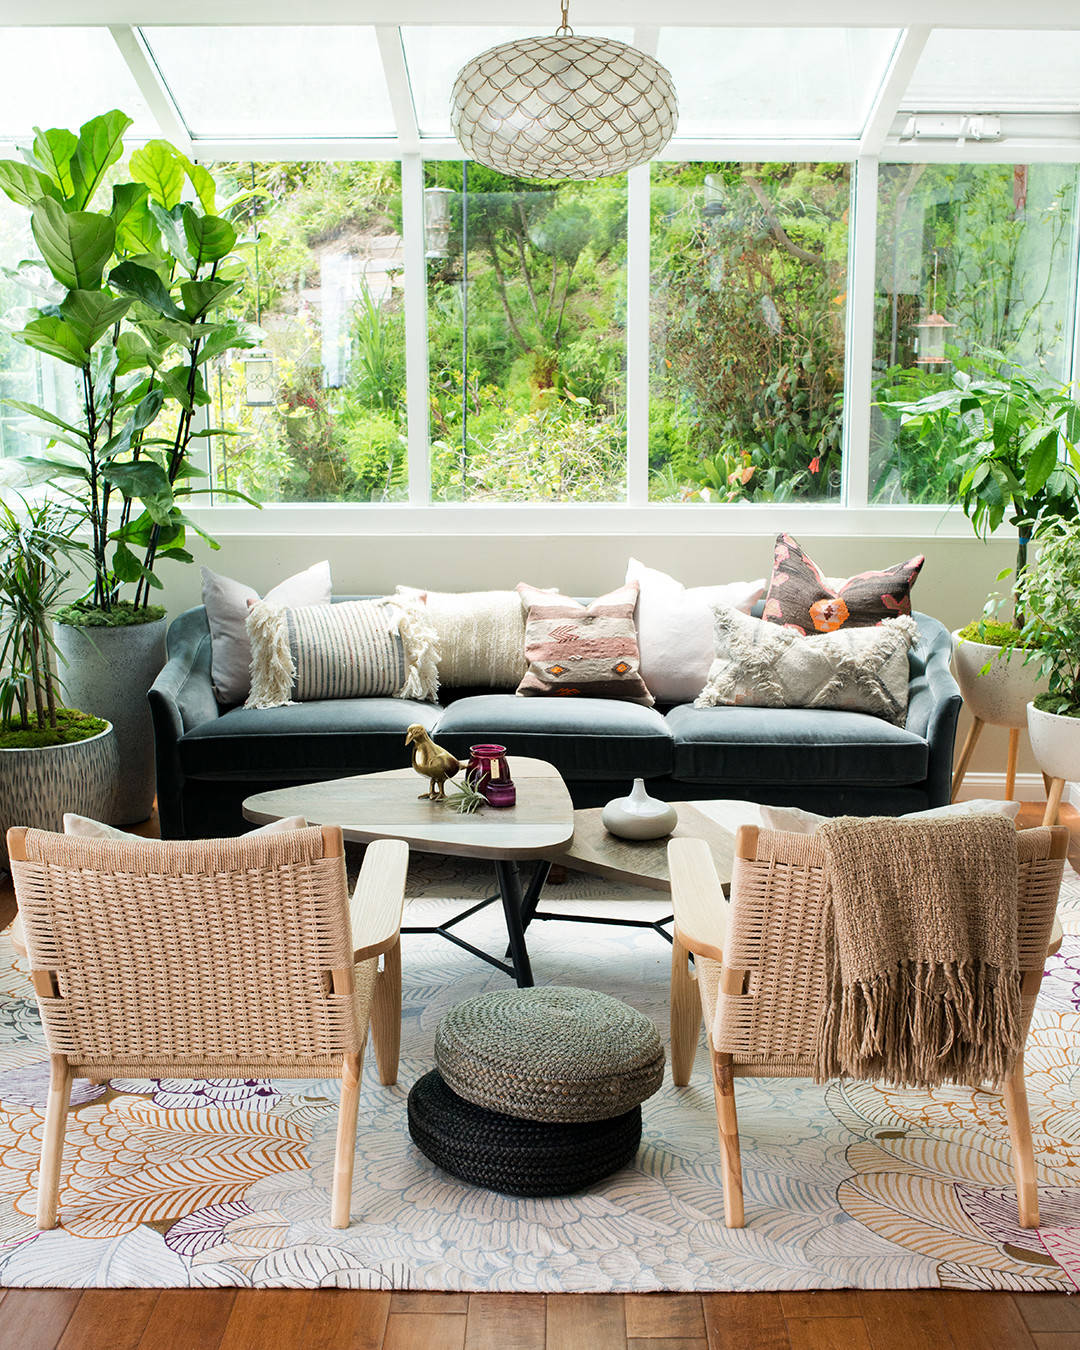 15 Light & Bright Eclectic Sunroom Designs Youll Fall In Love With